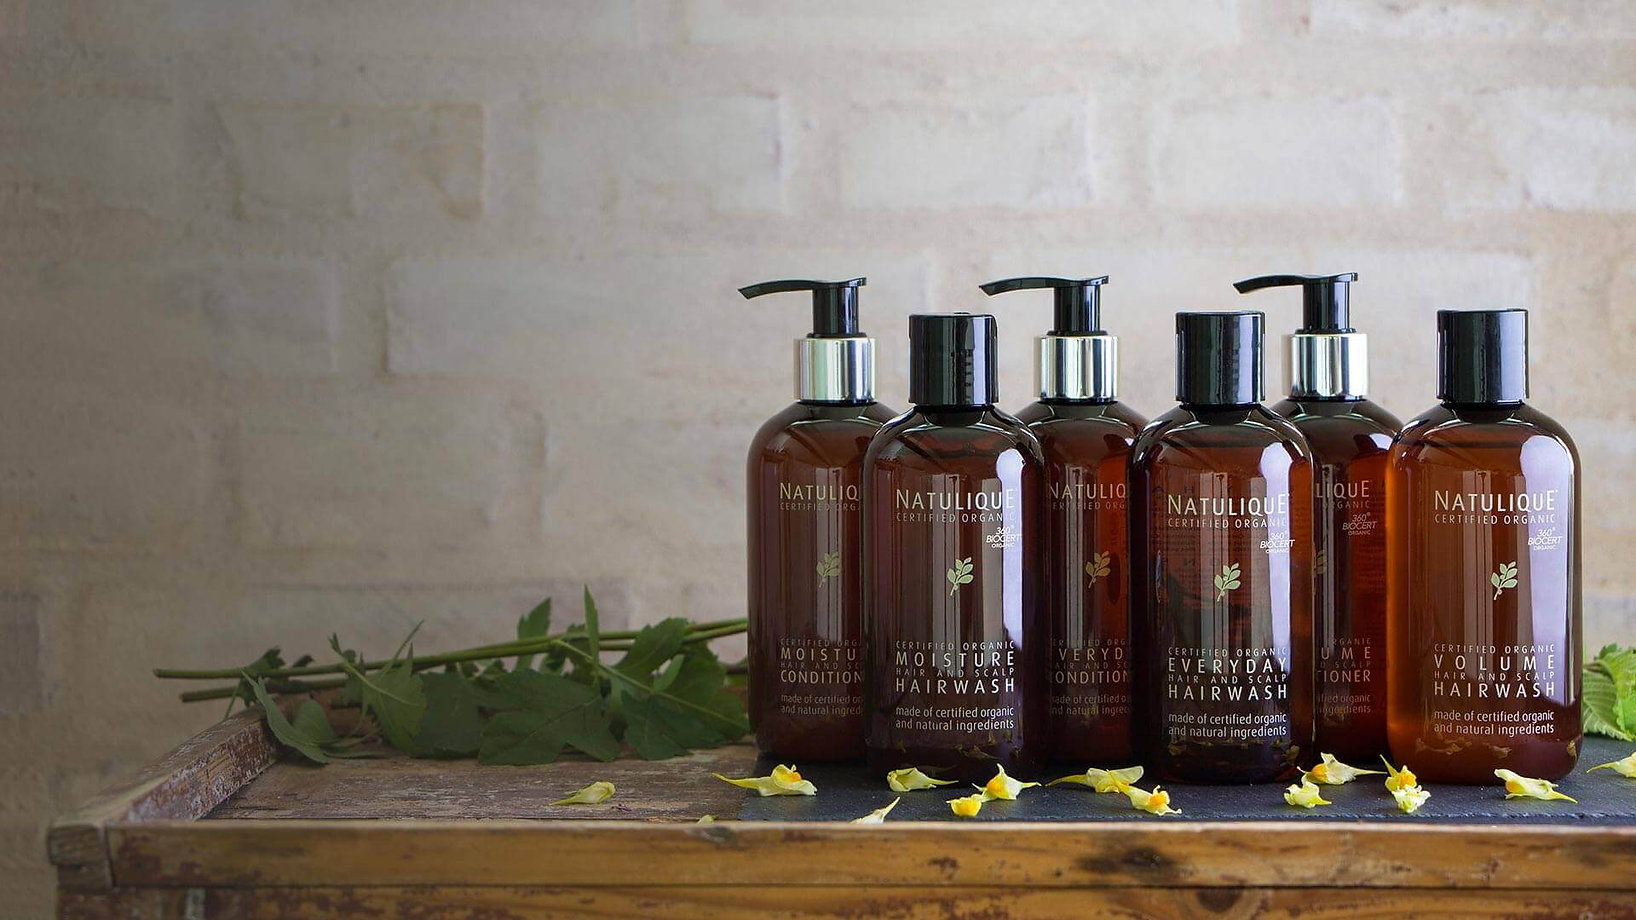 Vegan Certified Cruelty Free Shampoo and Conditioner - Organic Hair Culture